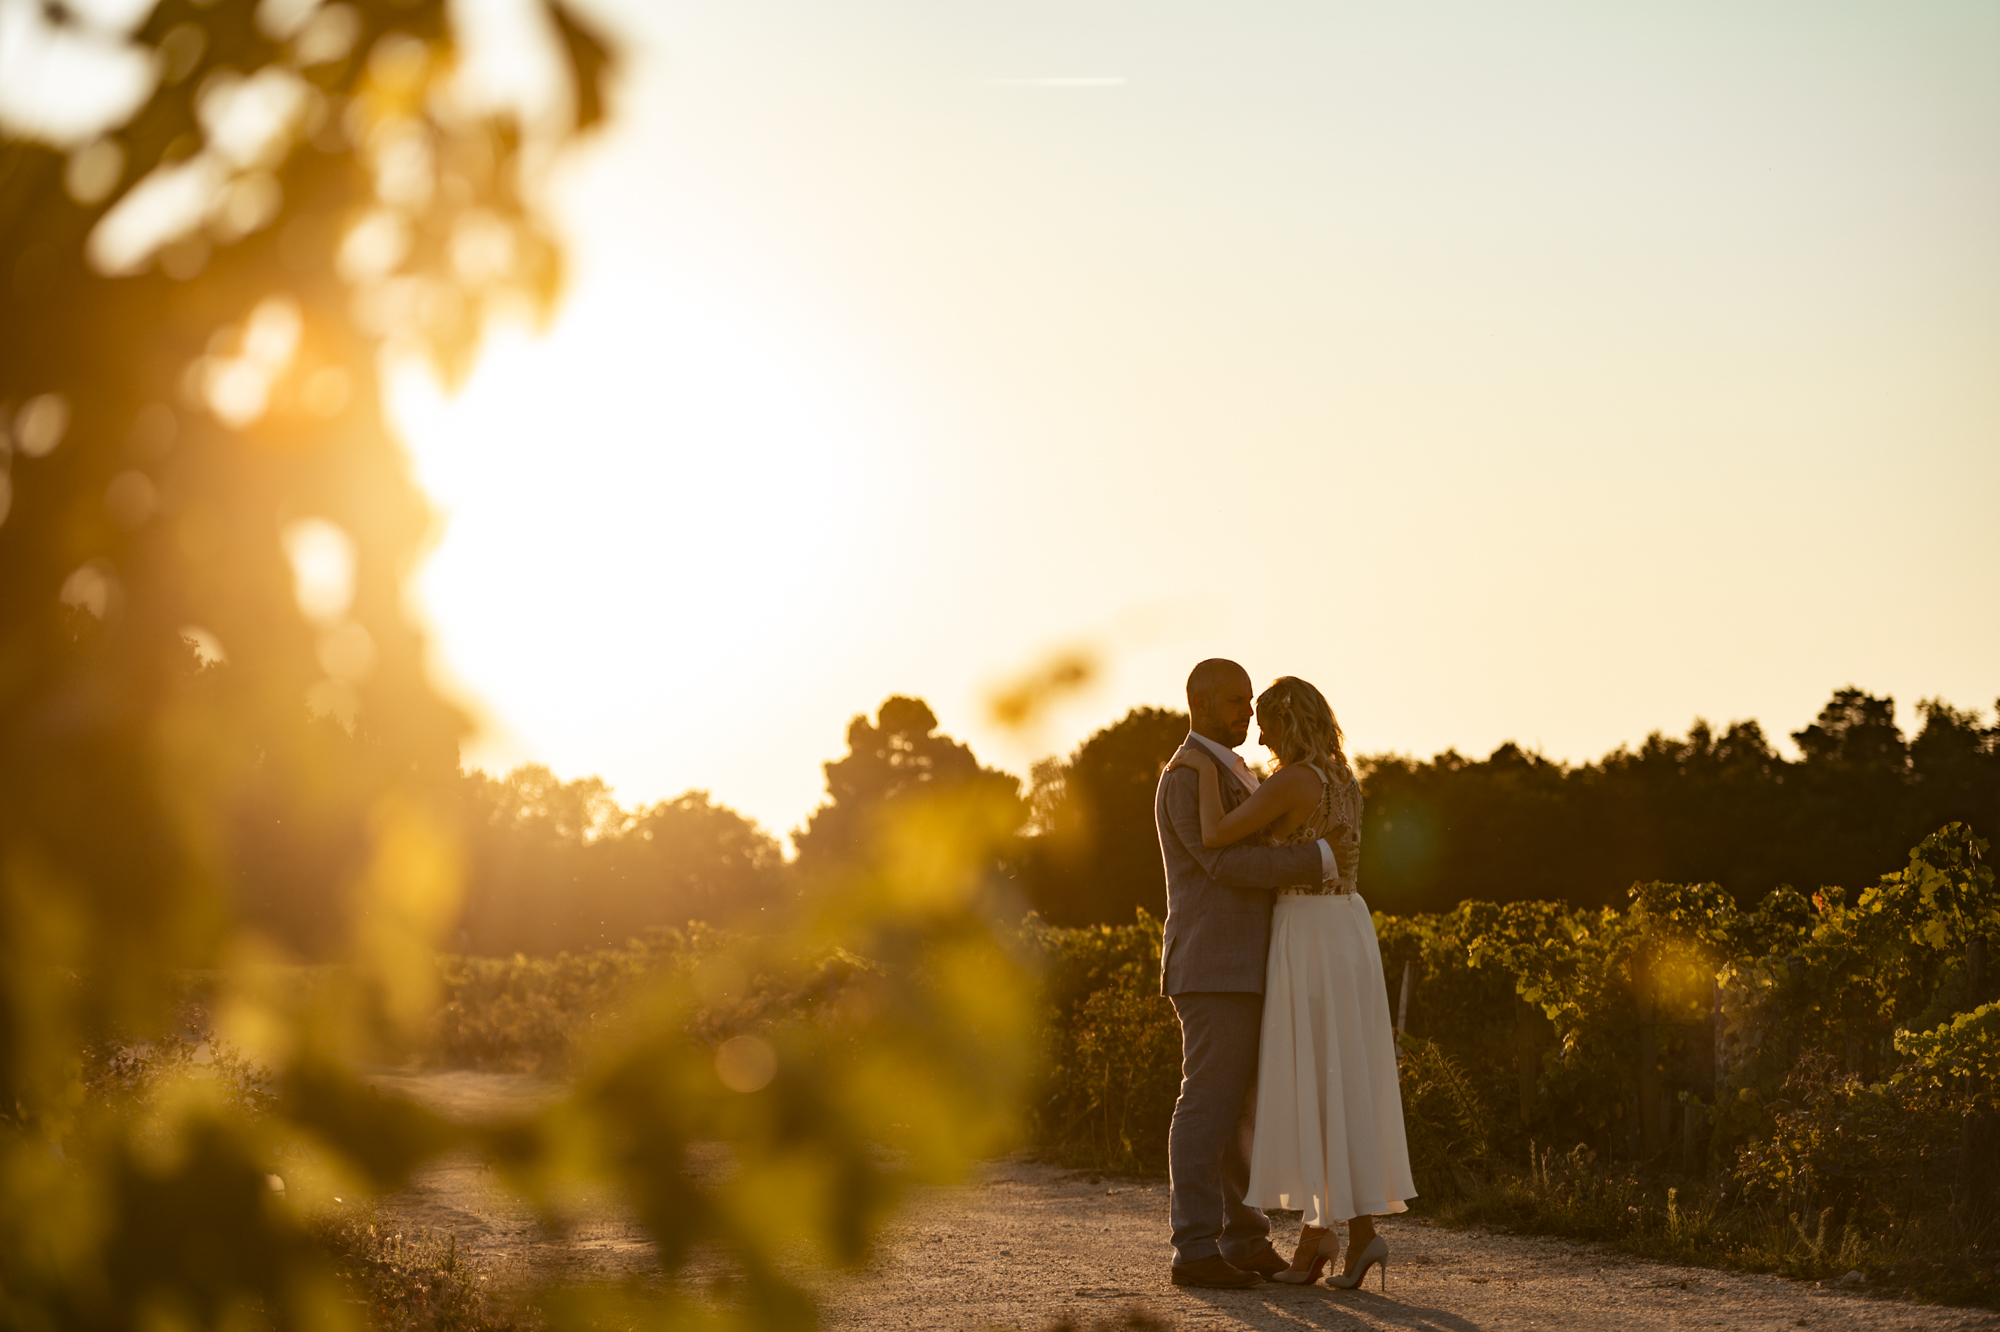 Wedding sunset in France